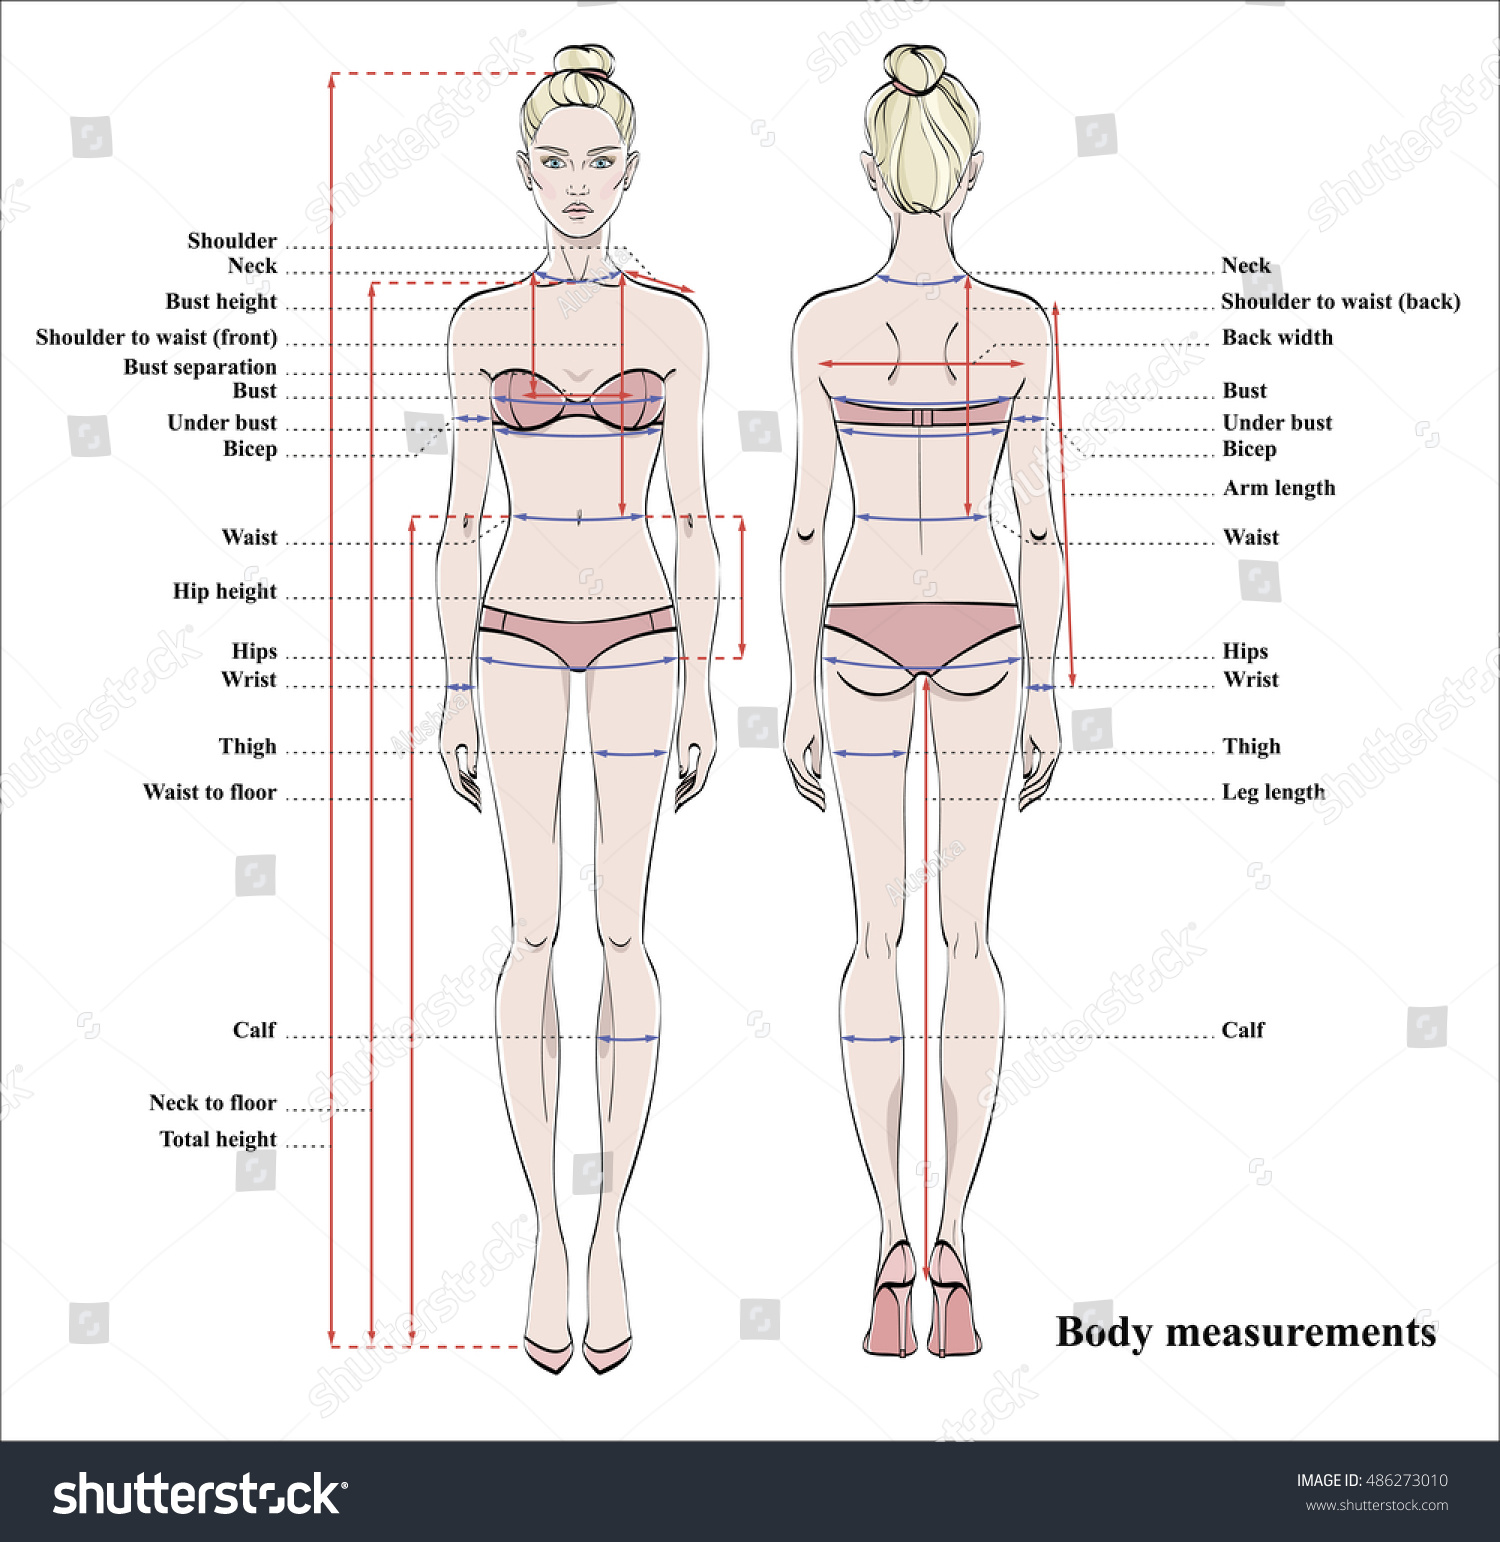 Taking your measurements is an fantastic method of keeping track of your changing body shape as you get fit. When you burn fat and increase muscle mass, there may be times when you weigh a little more despite the fact that your body is getting smaller and tighter.